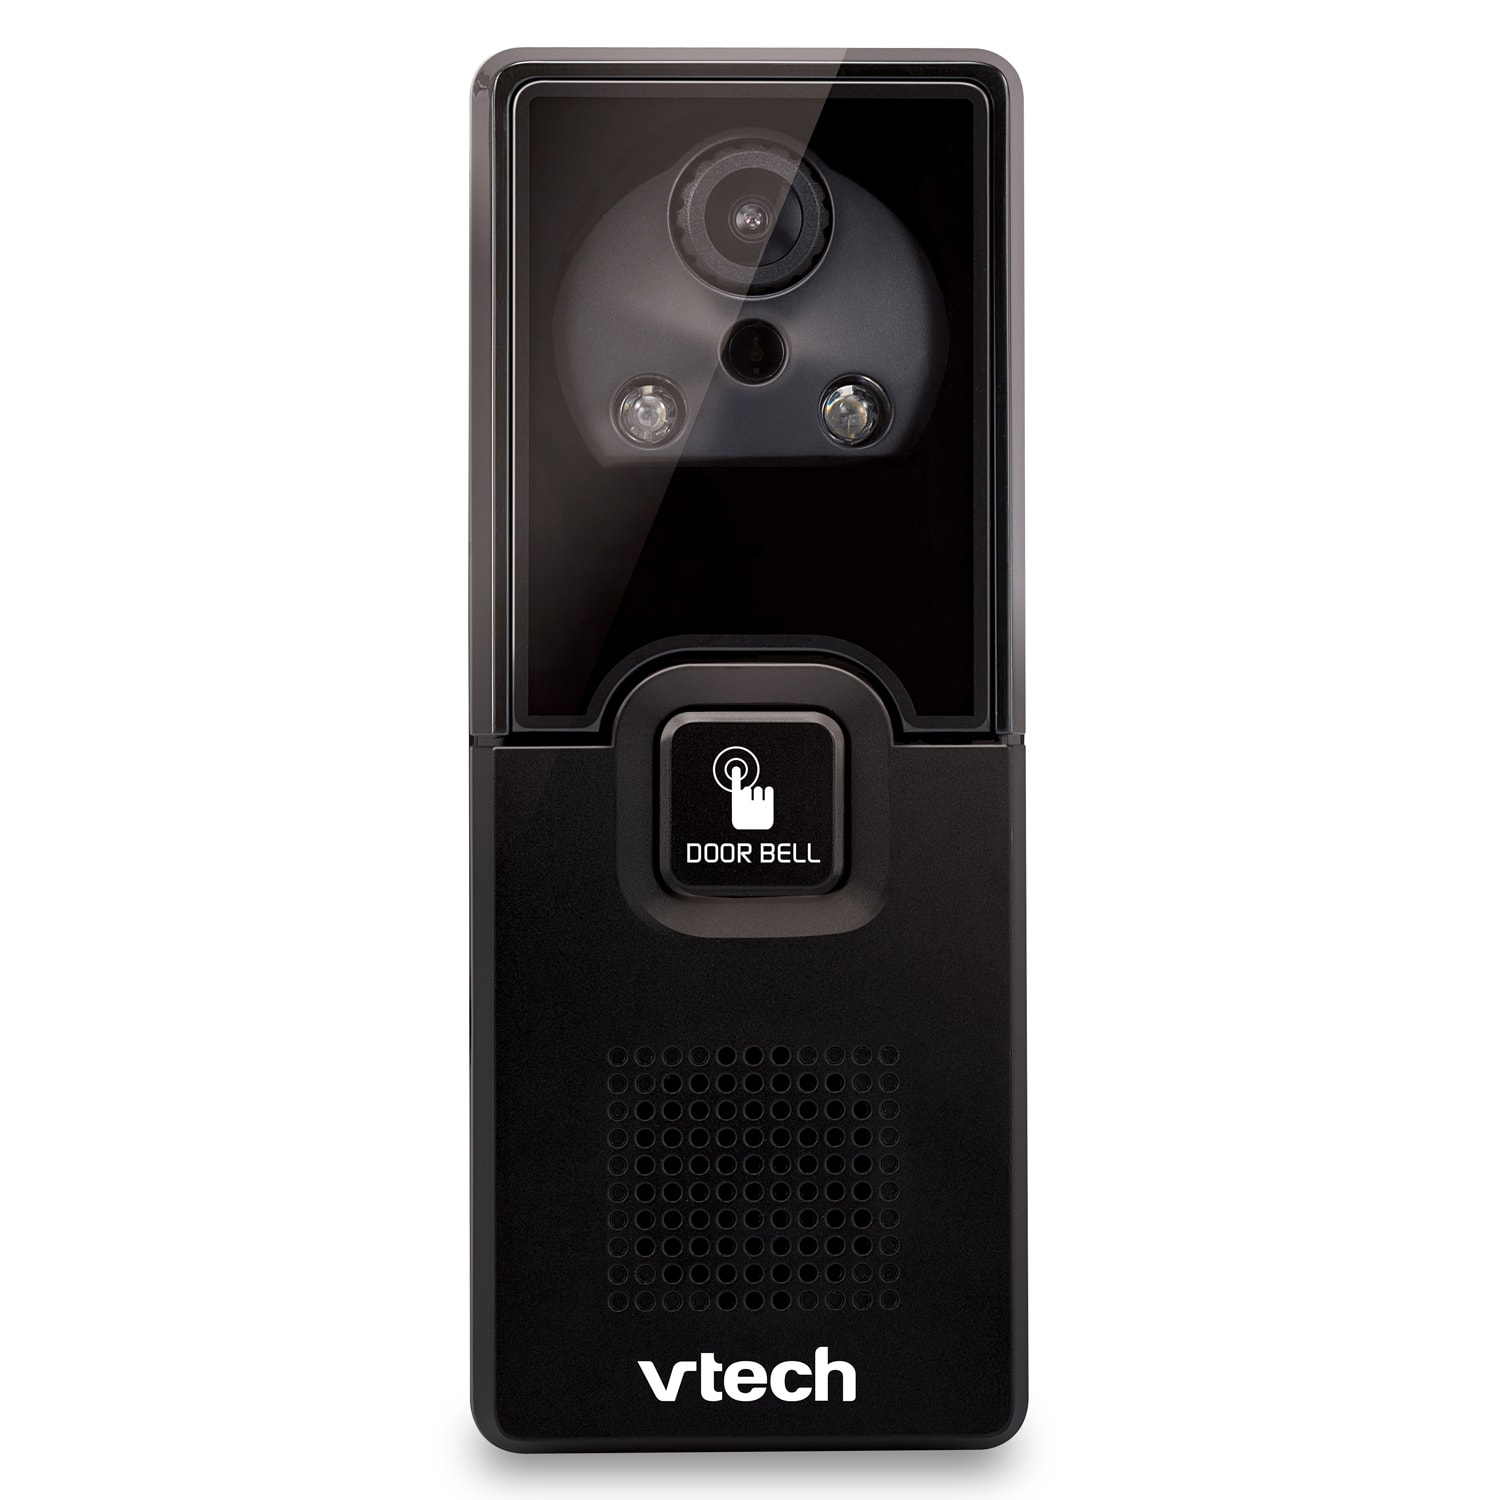 4 Handset Answering System With Audio Video Doorbell Is7121 2 Indicator By 741 Accessory